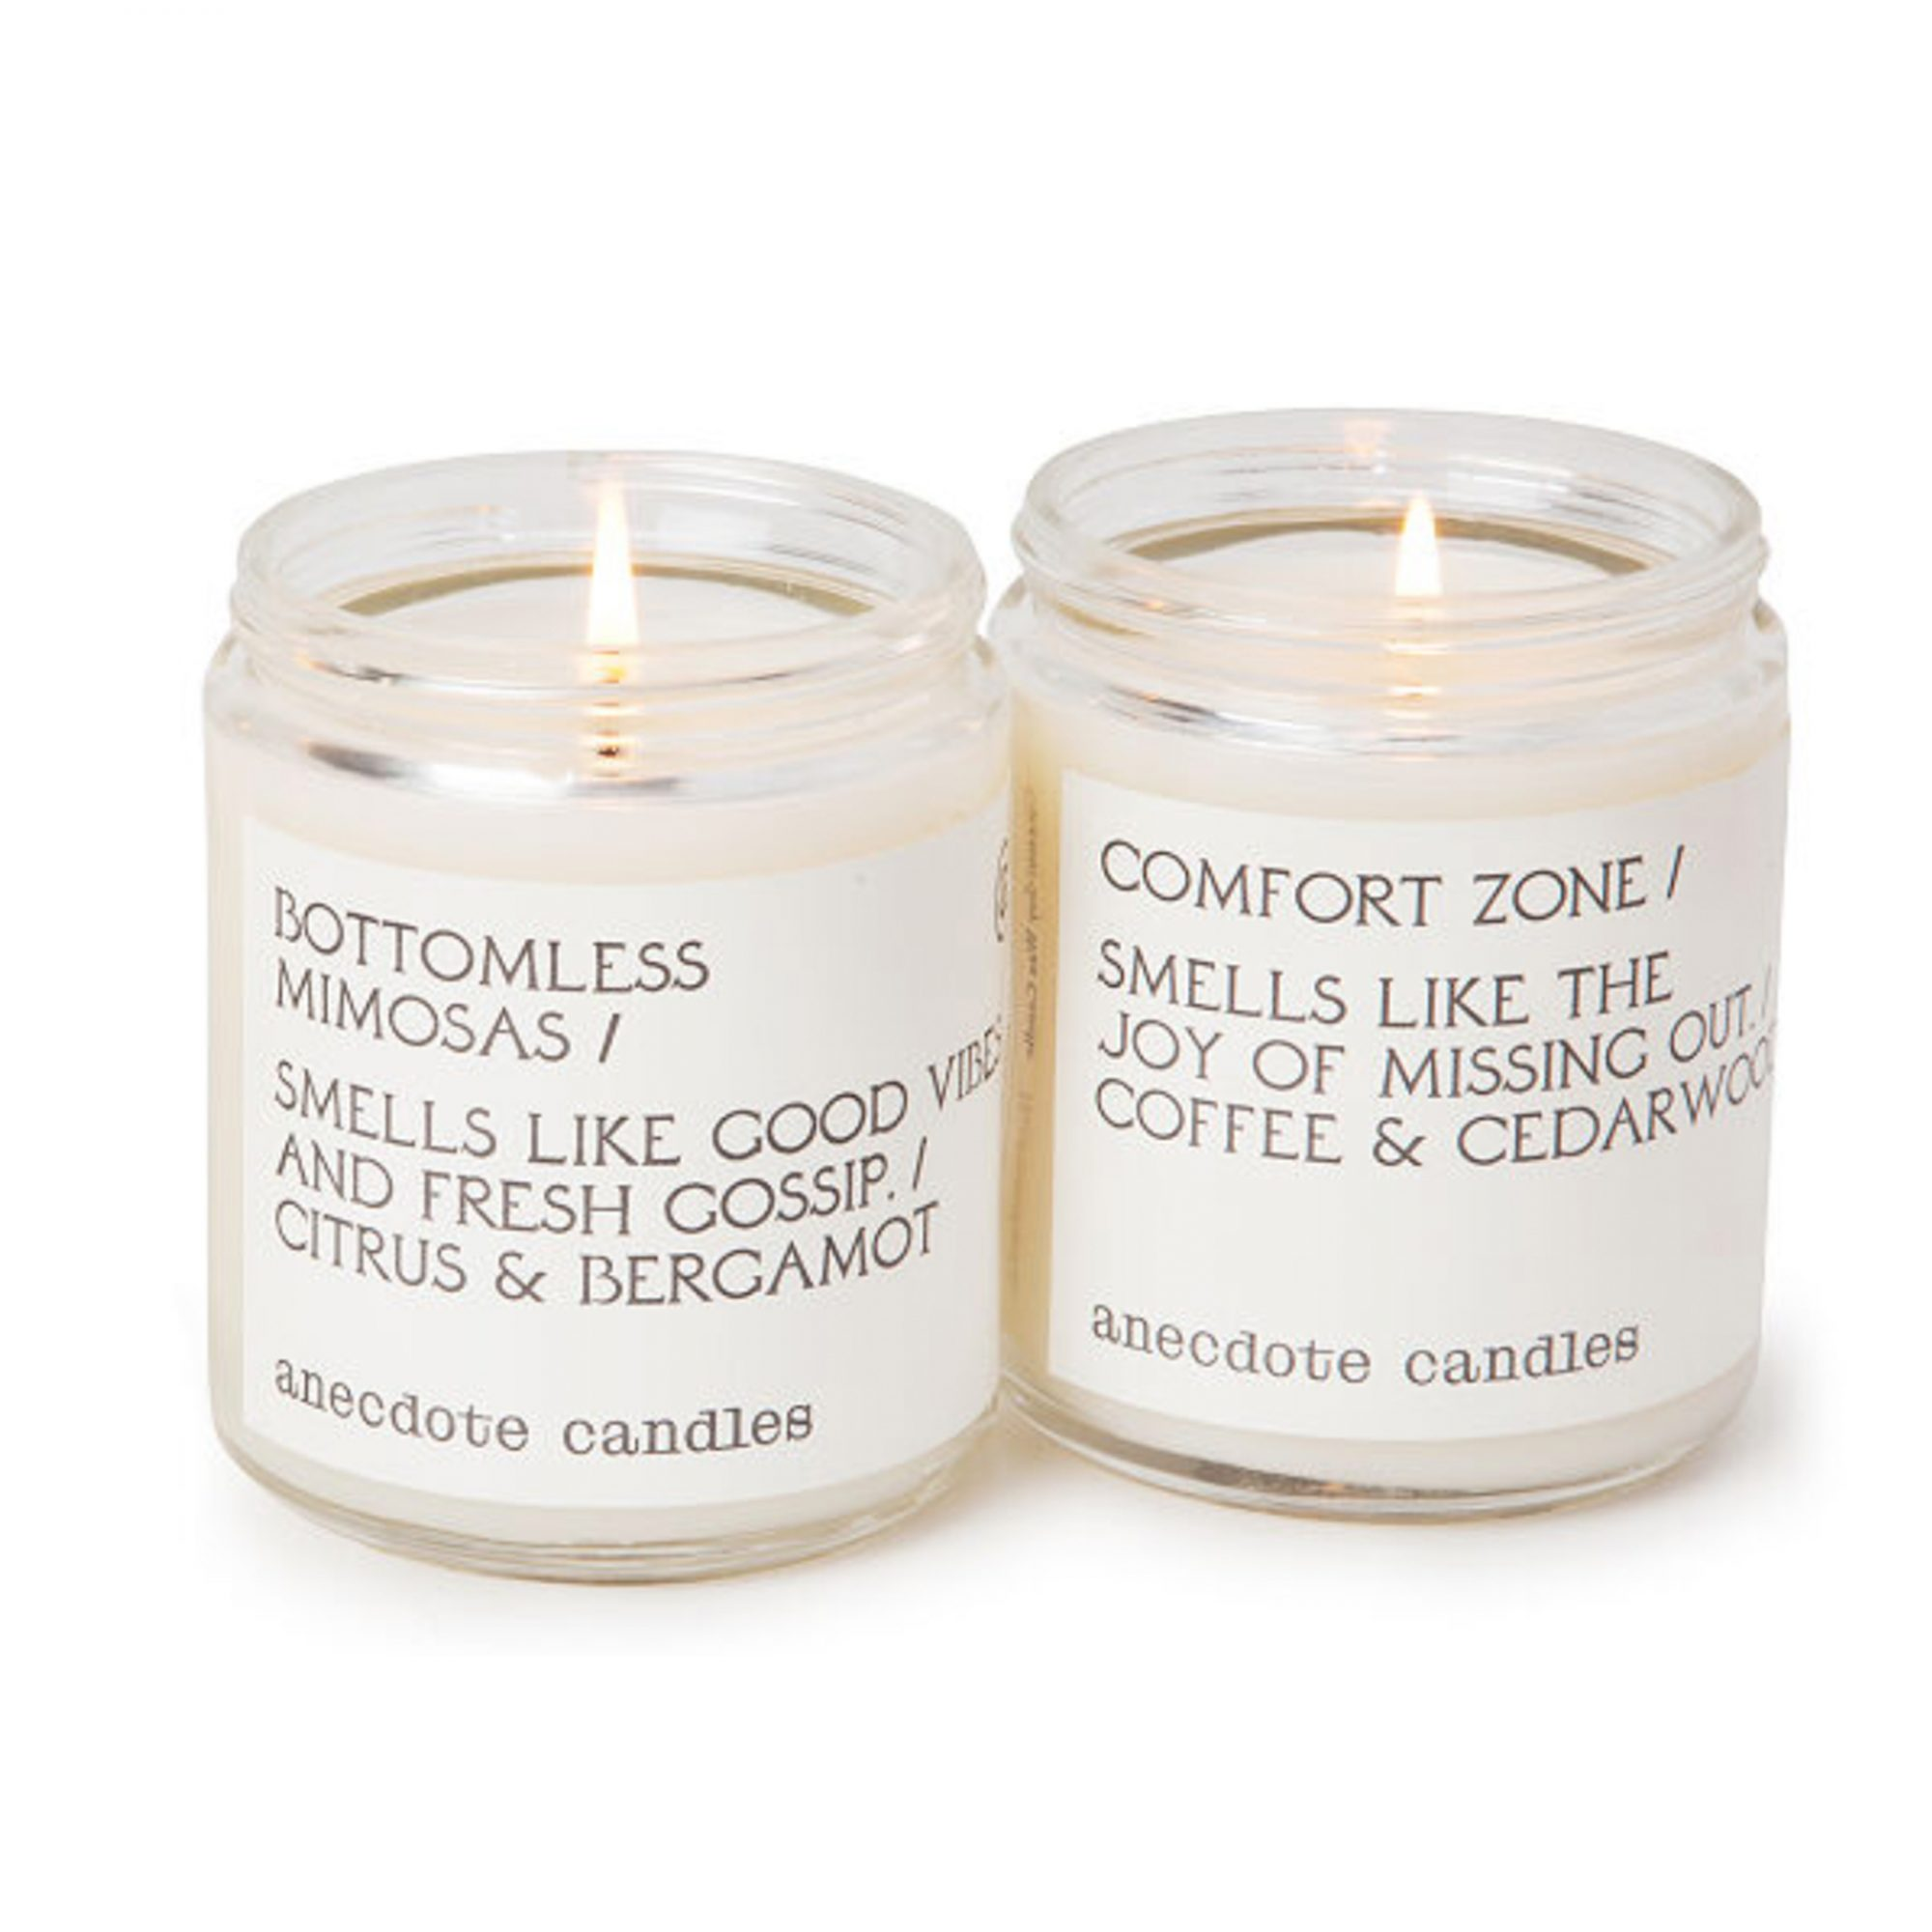 anecdote-candles, best-friend-gifts